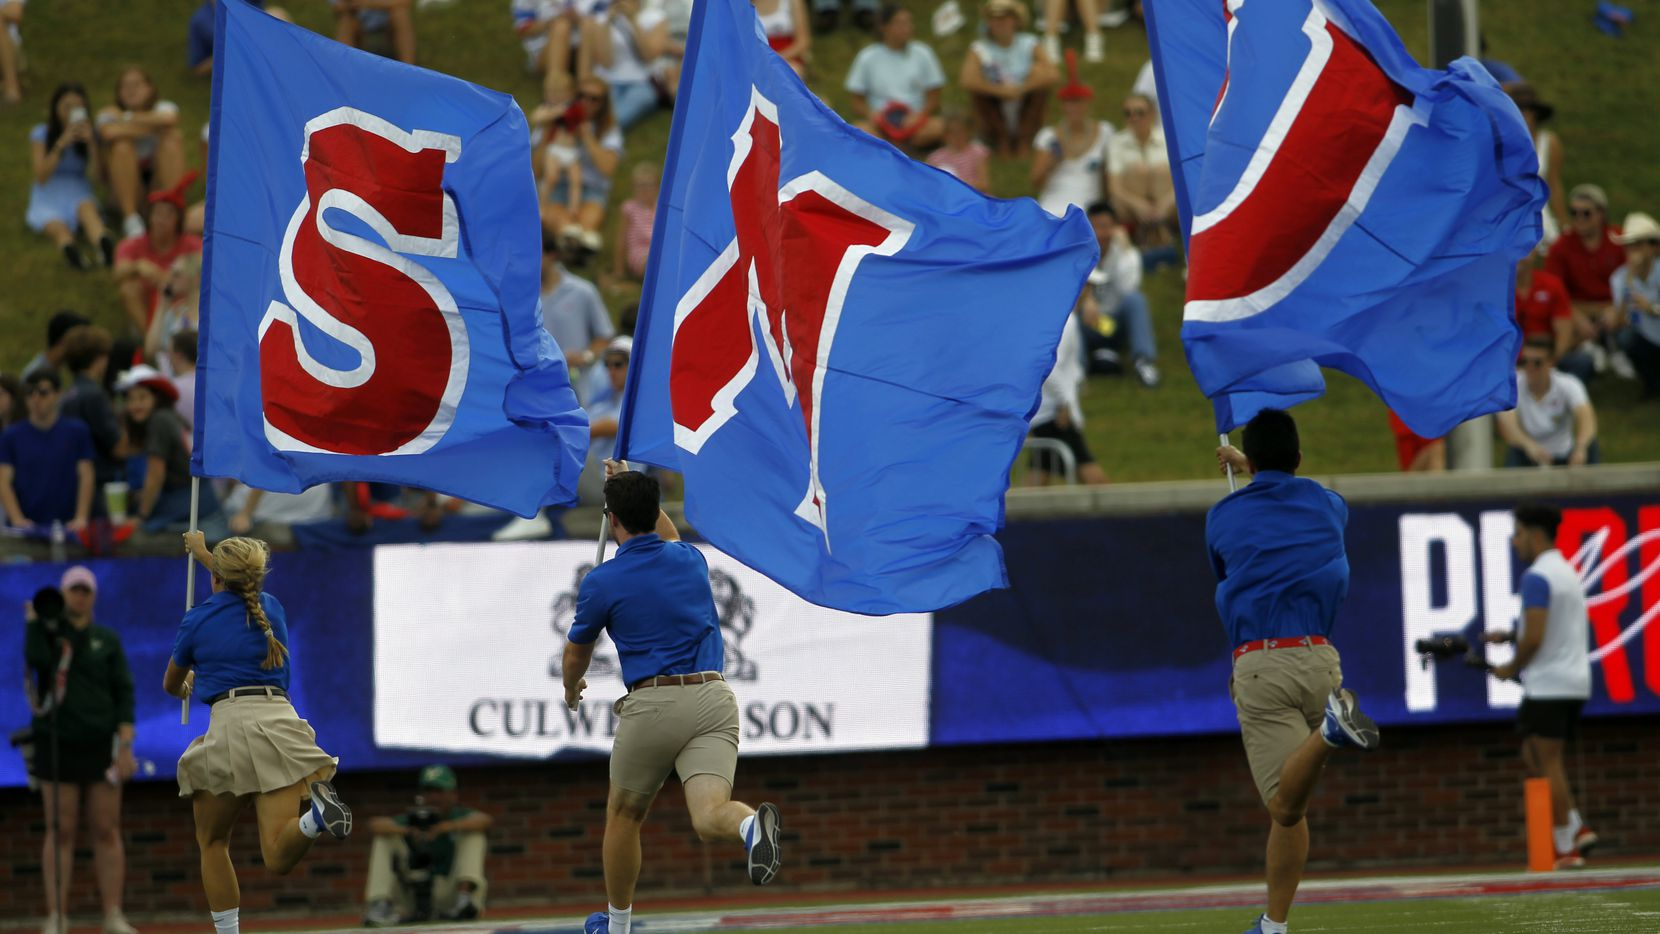 SMU spirit group members race across the field following a first half scoring drive in their game against South Florida. The two teams played their NCAA football game at SMU's Ford Stadium in Dallas on October 2, 2021.